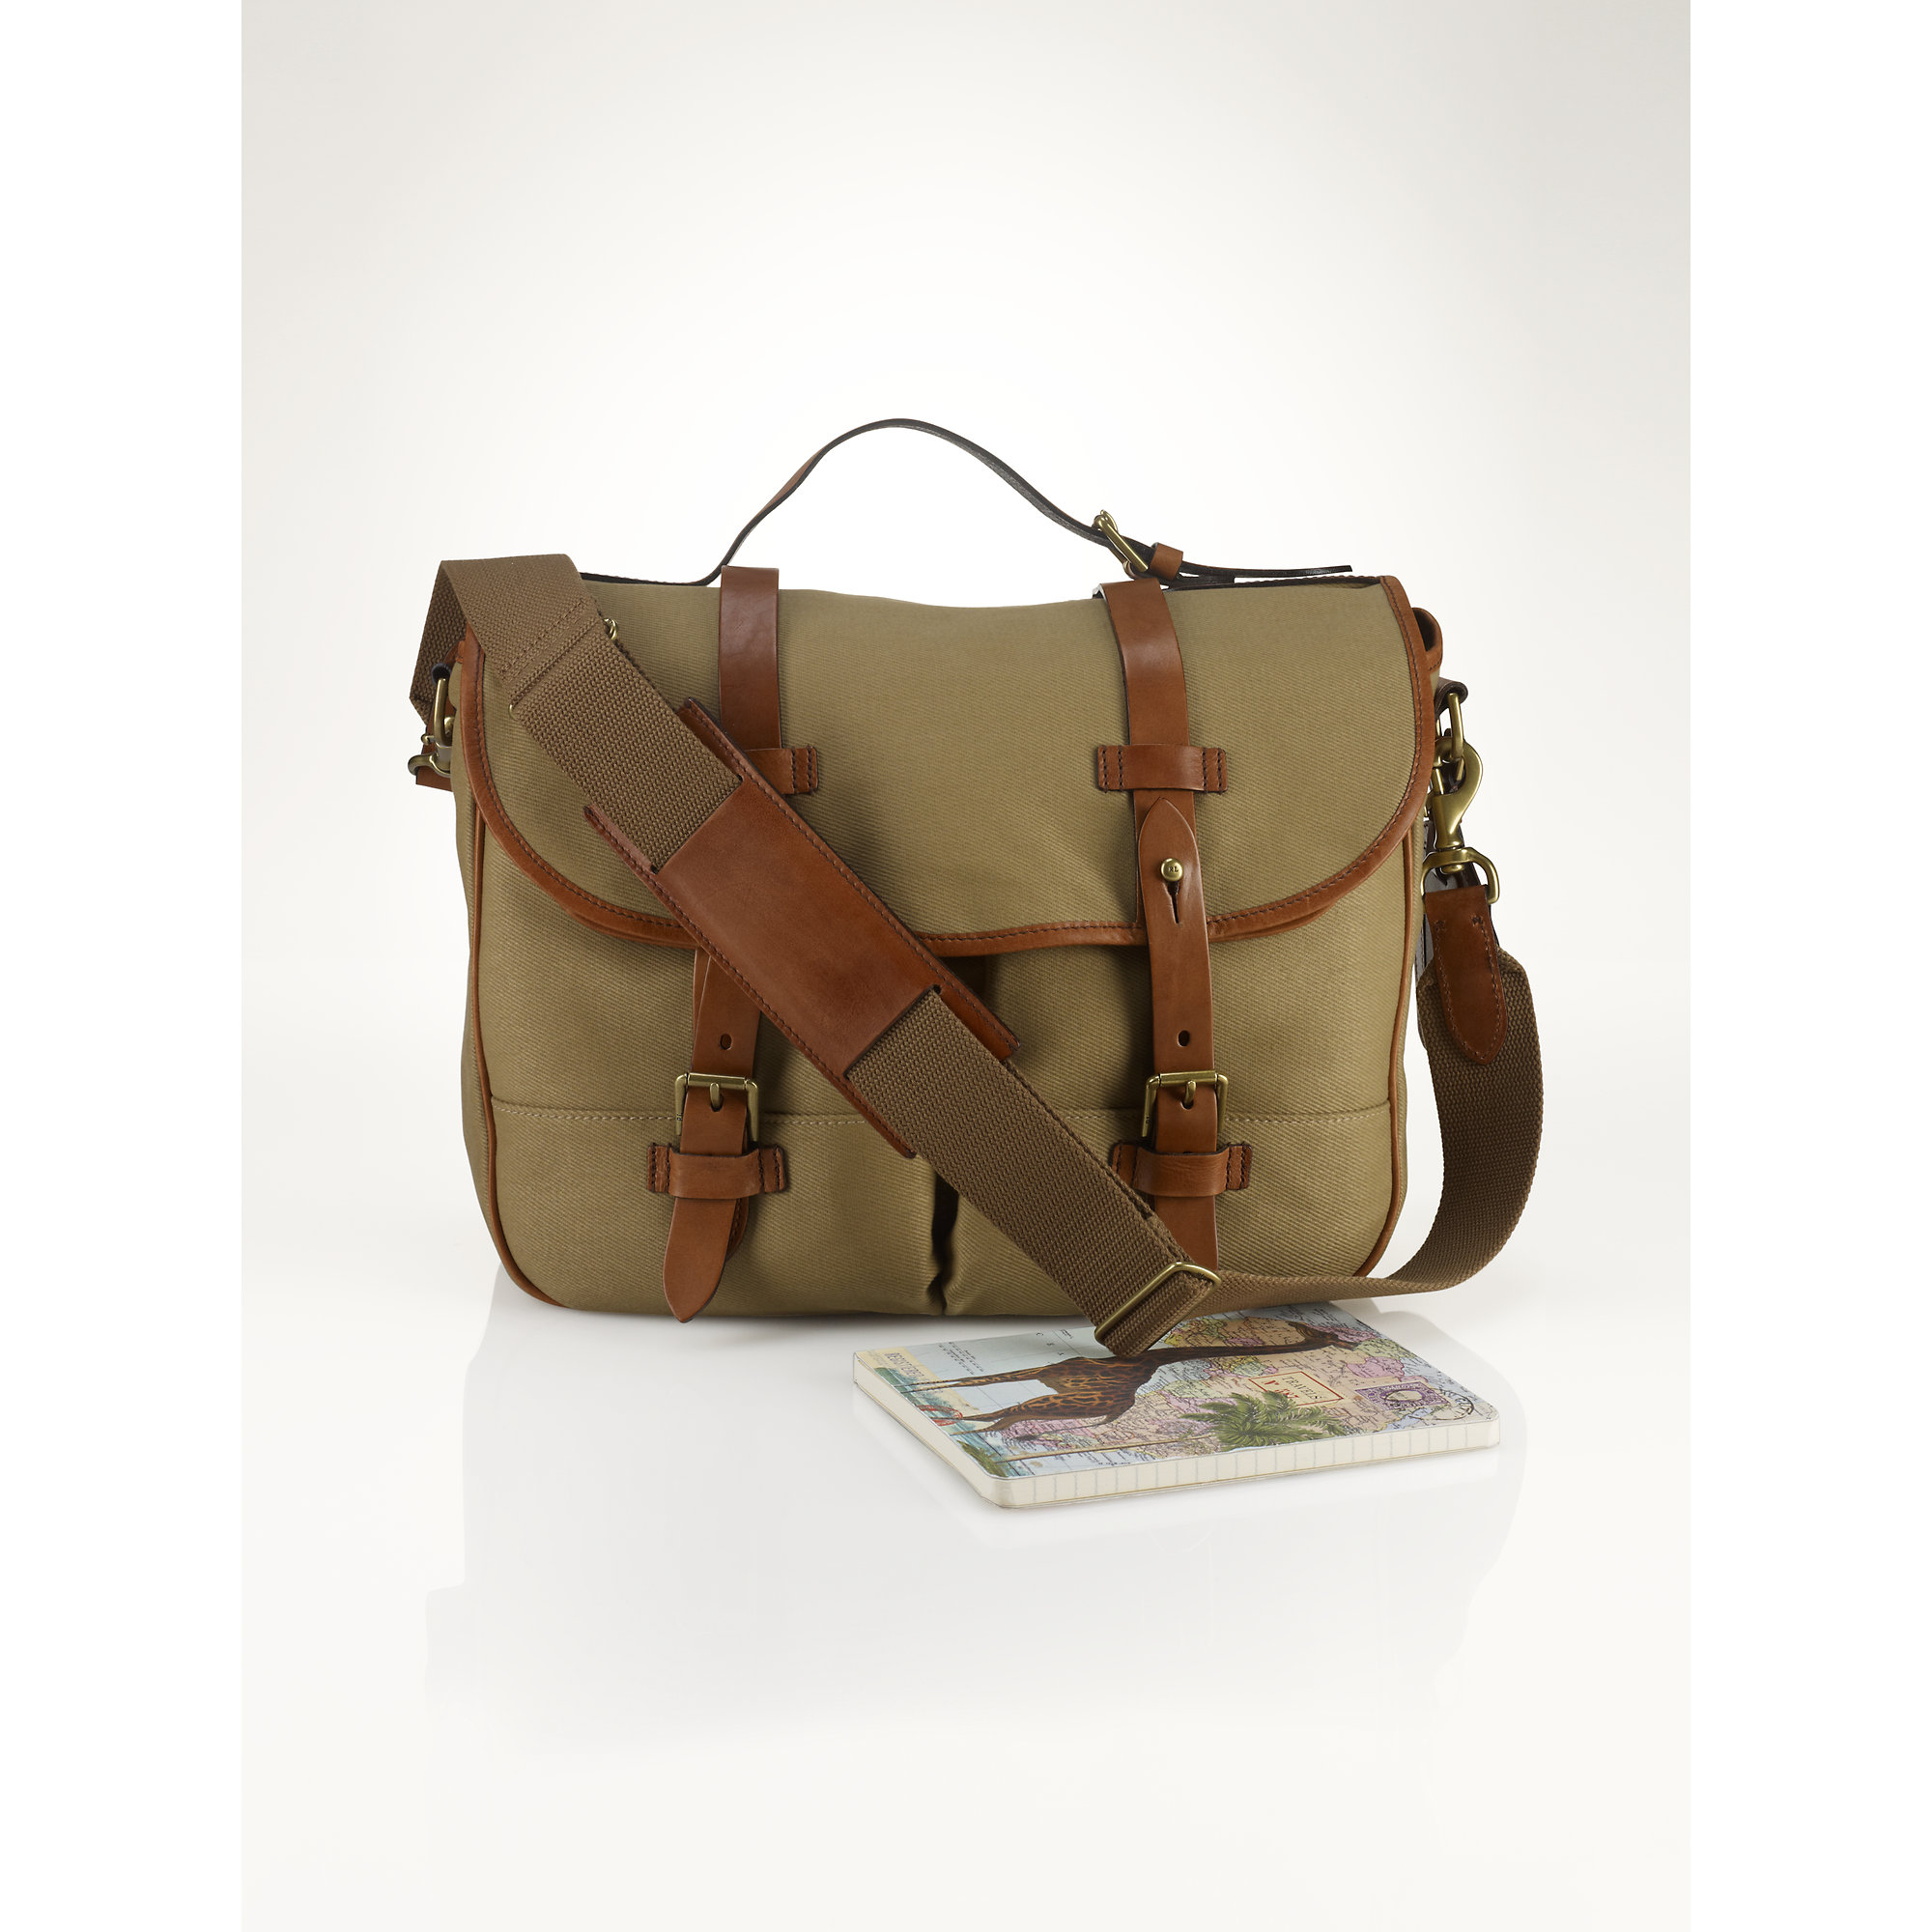 ... store lyst polo ralph lauren canvas leather messenger in natural for men  c6367 aaeea 9aeee832e3